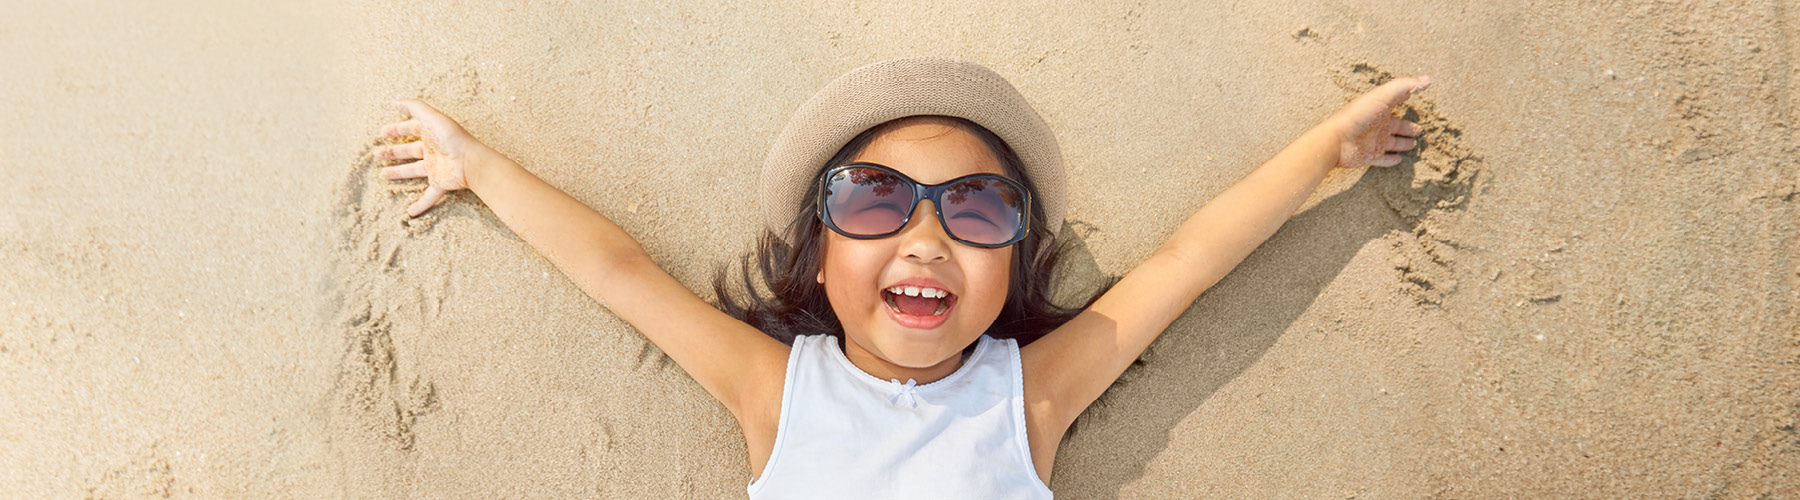 Small girl with sunglasses and hat laying on sandy beach